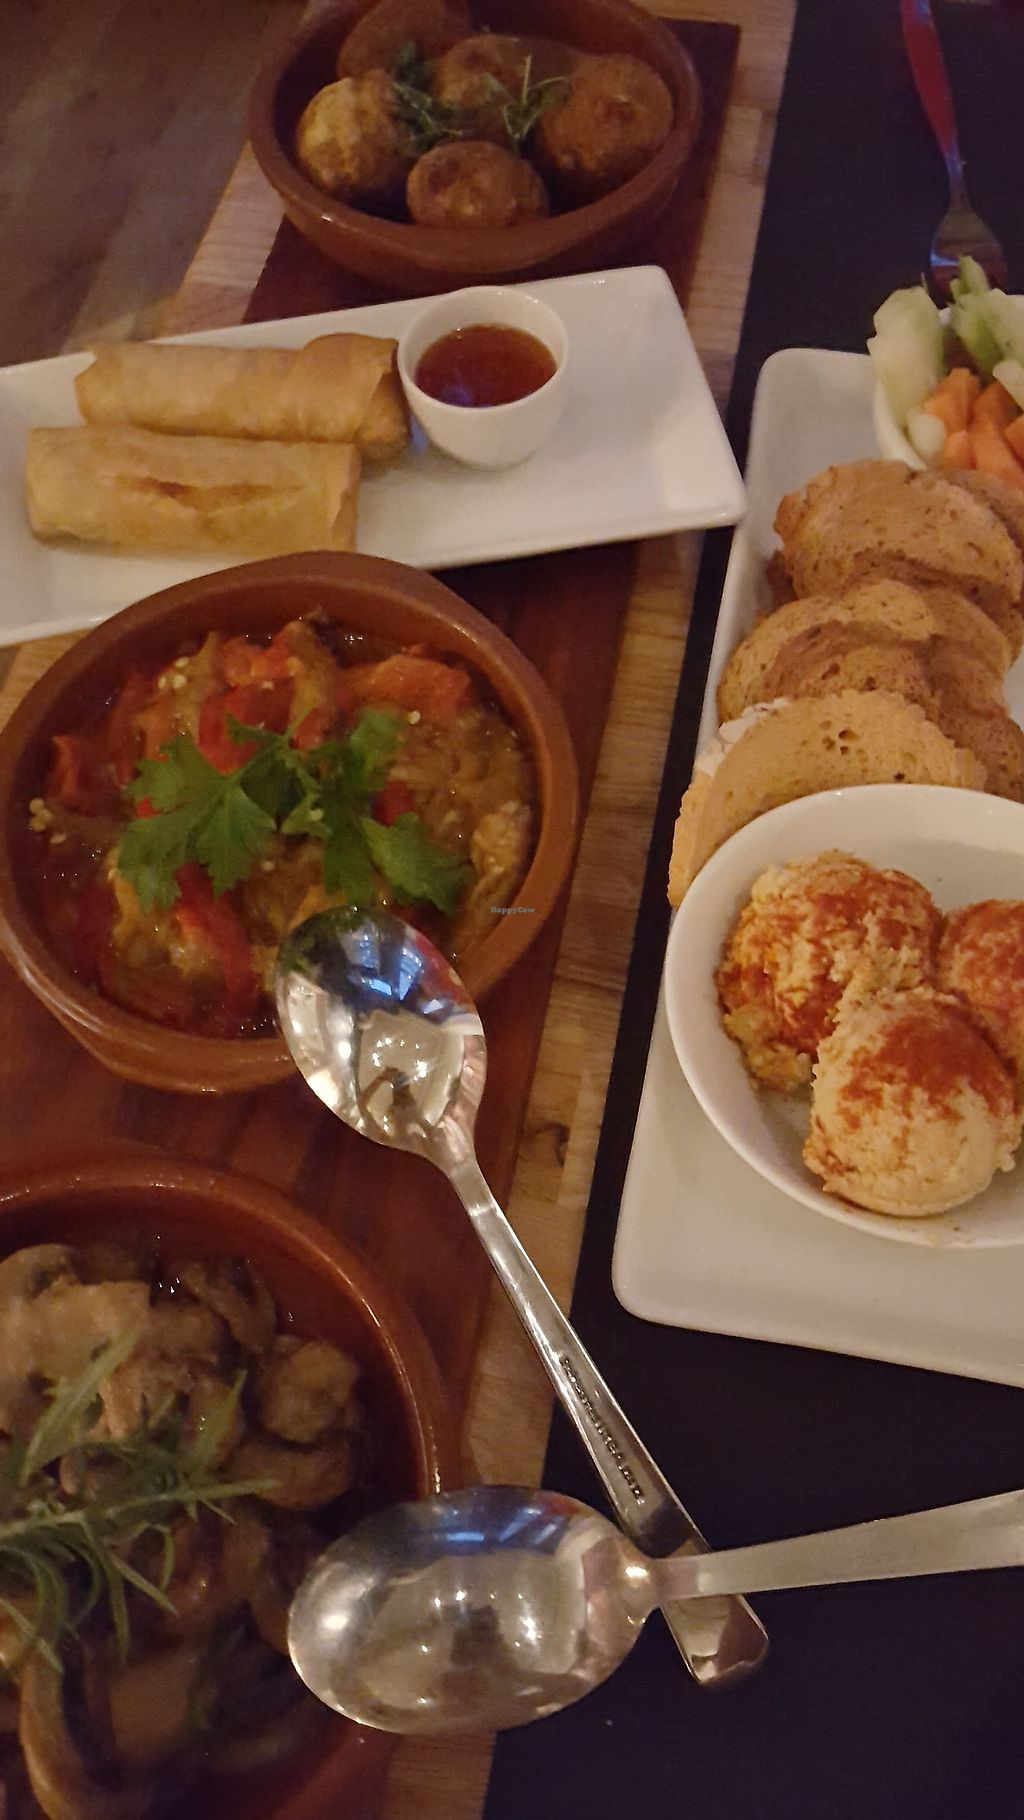 """Photo of The Gourmet Market  by <a href=""""/members/profile/VeganAnnaS"""">VeganAnnaS</a> <br/>Part of our vegan tapas board, I couldn't fit it all in the photo but it included vegan omelette, an aubergine dish, garlic mushrooms, potato croquettes, homemade hummus and crudités and veg spring rolls <br/> September 10, 2017  - <a href='/contact/abuse/image/83764/302908'>Report</a>"""